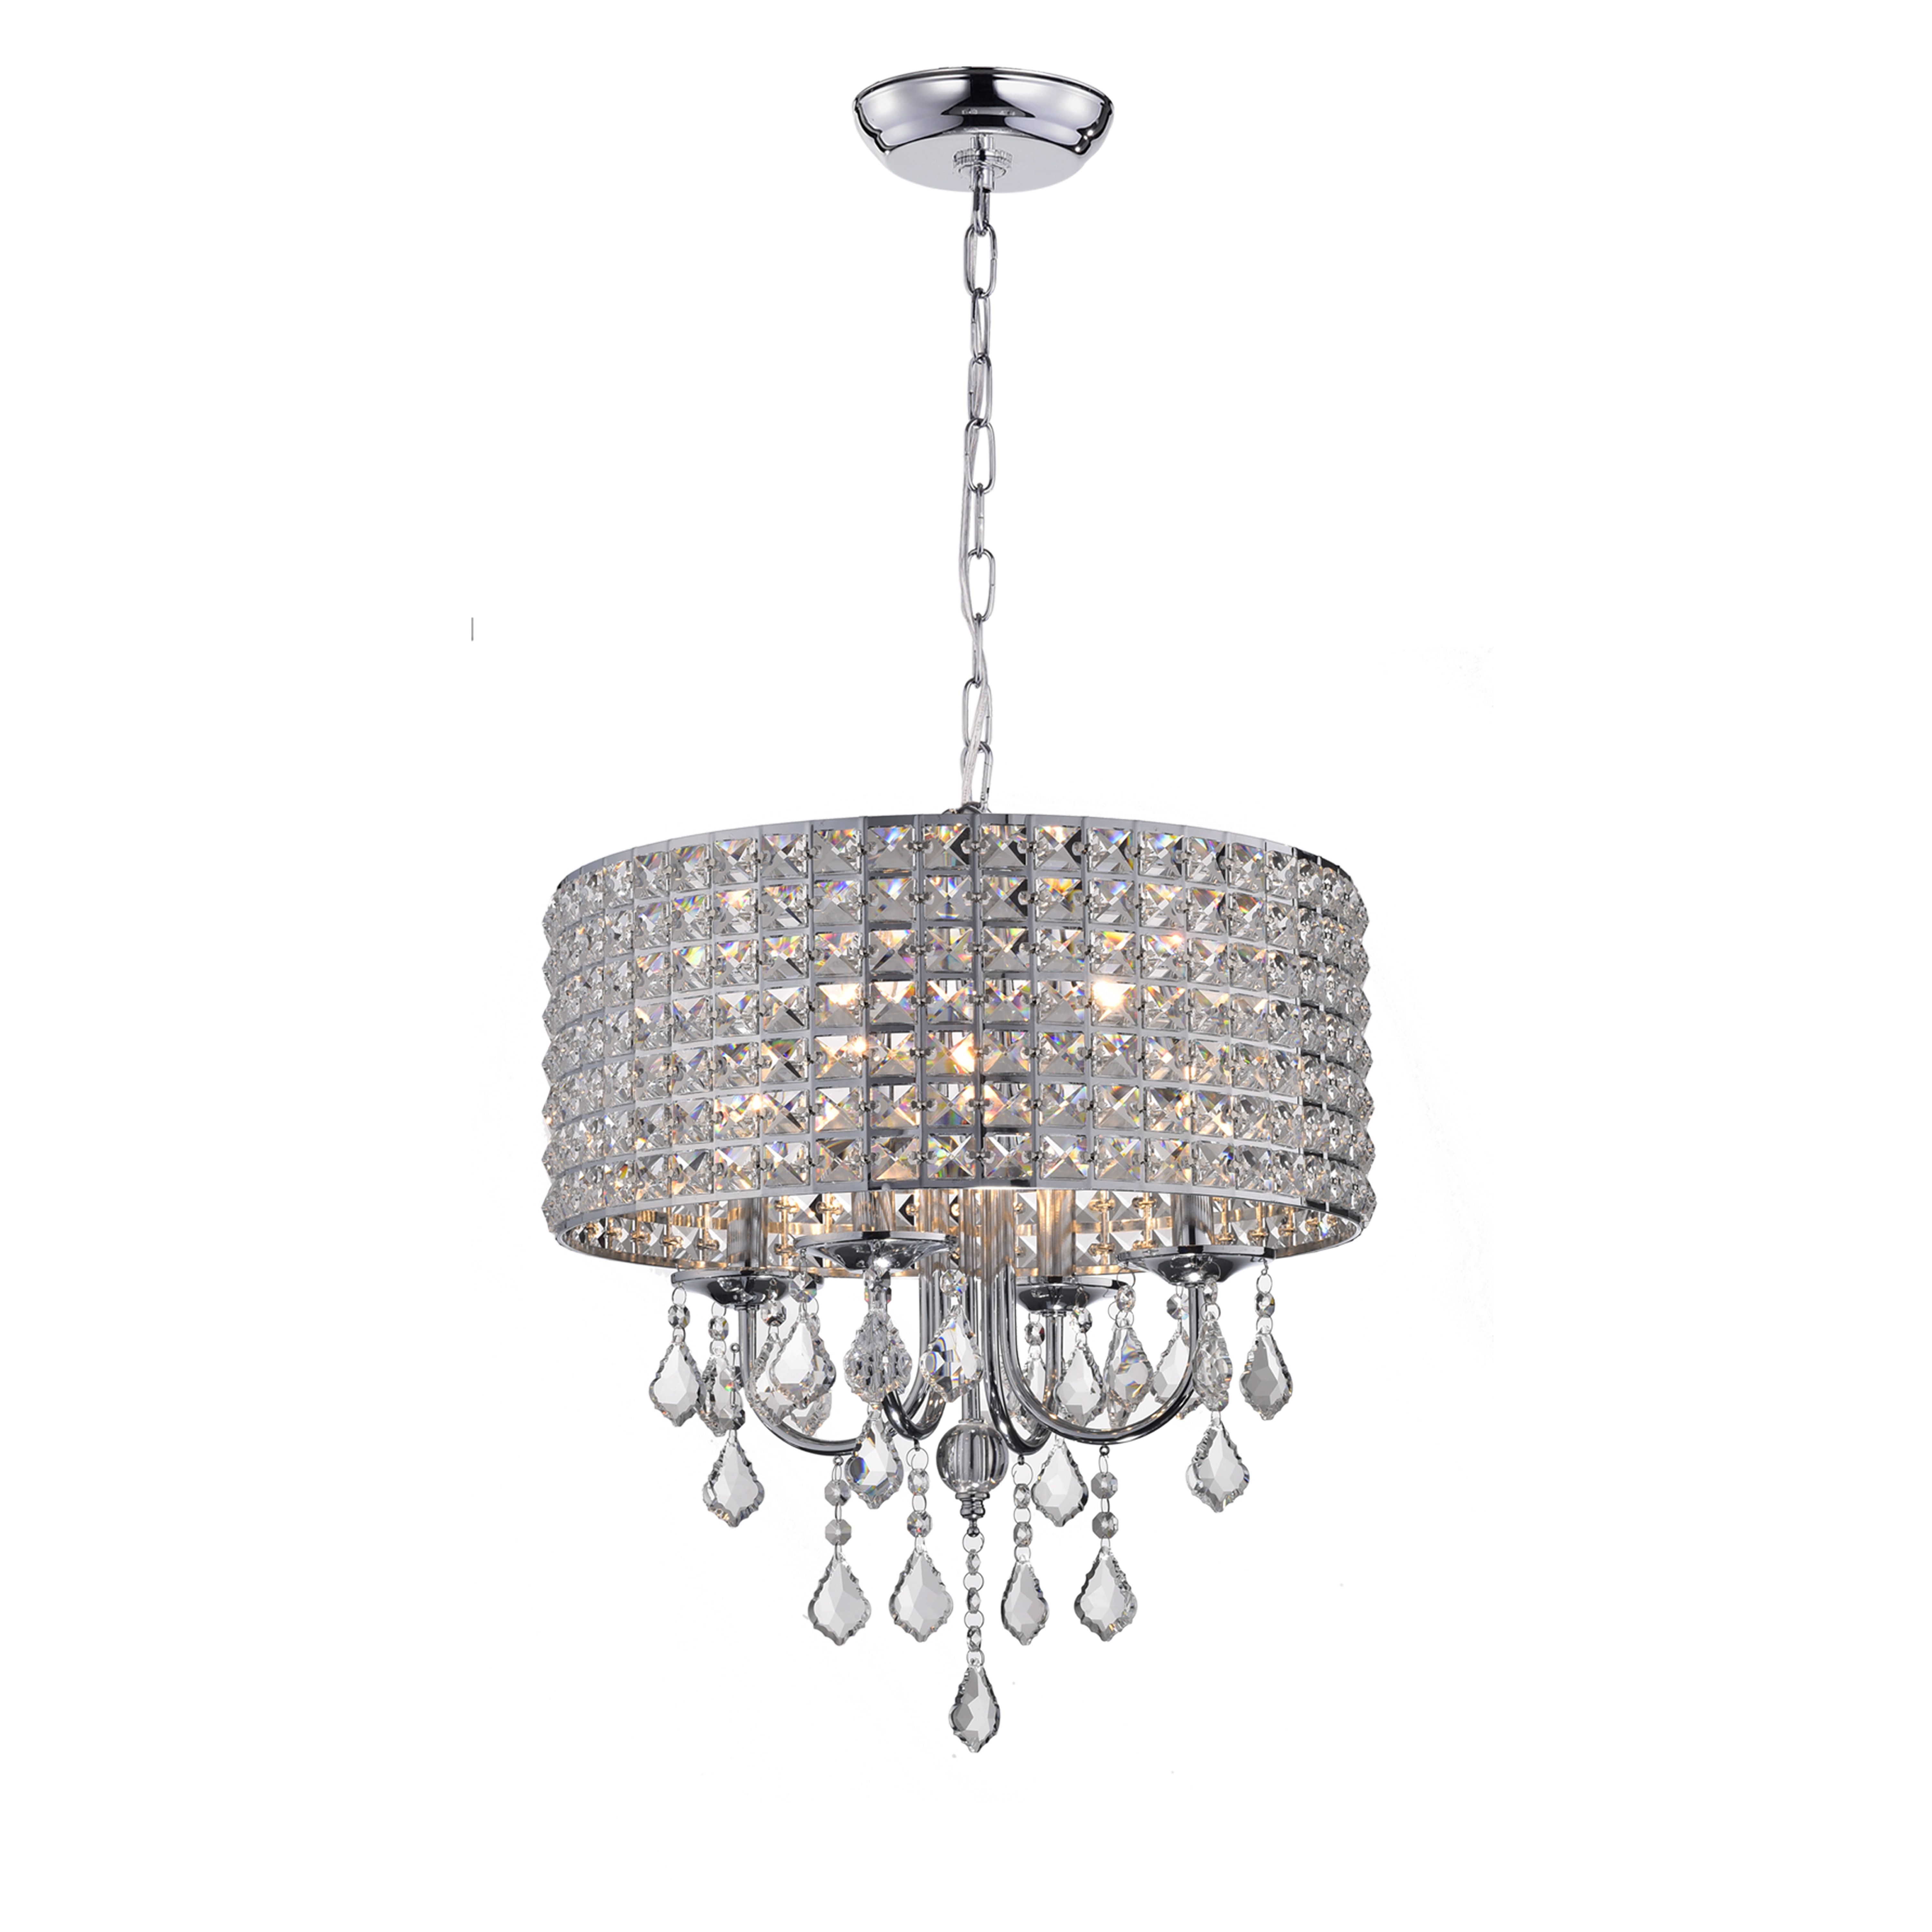 Albano 4 Light Crystal Chandeliers With Regard To Latest Albano 4 Light Crystal Chandelier (View 4 of 20)